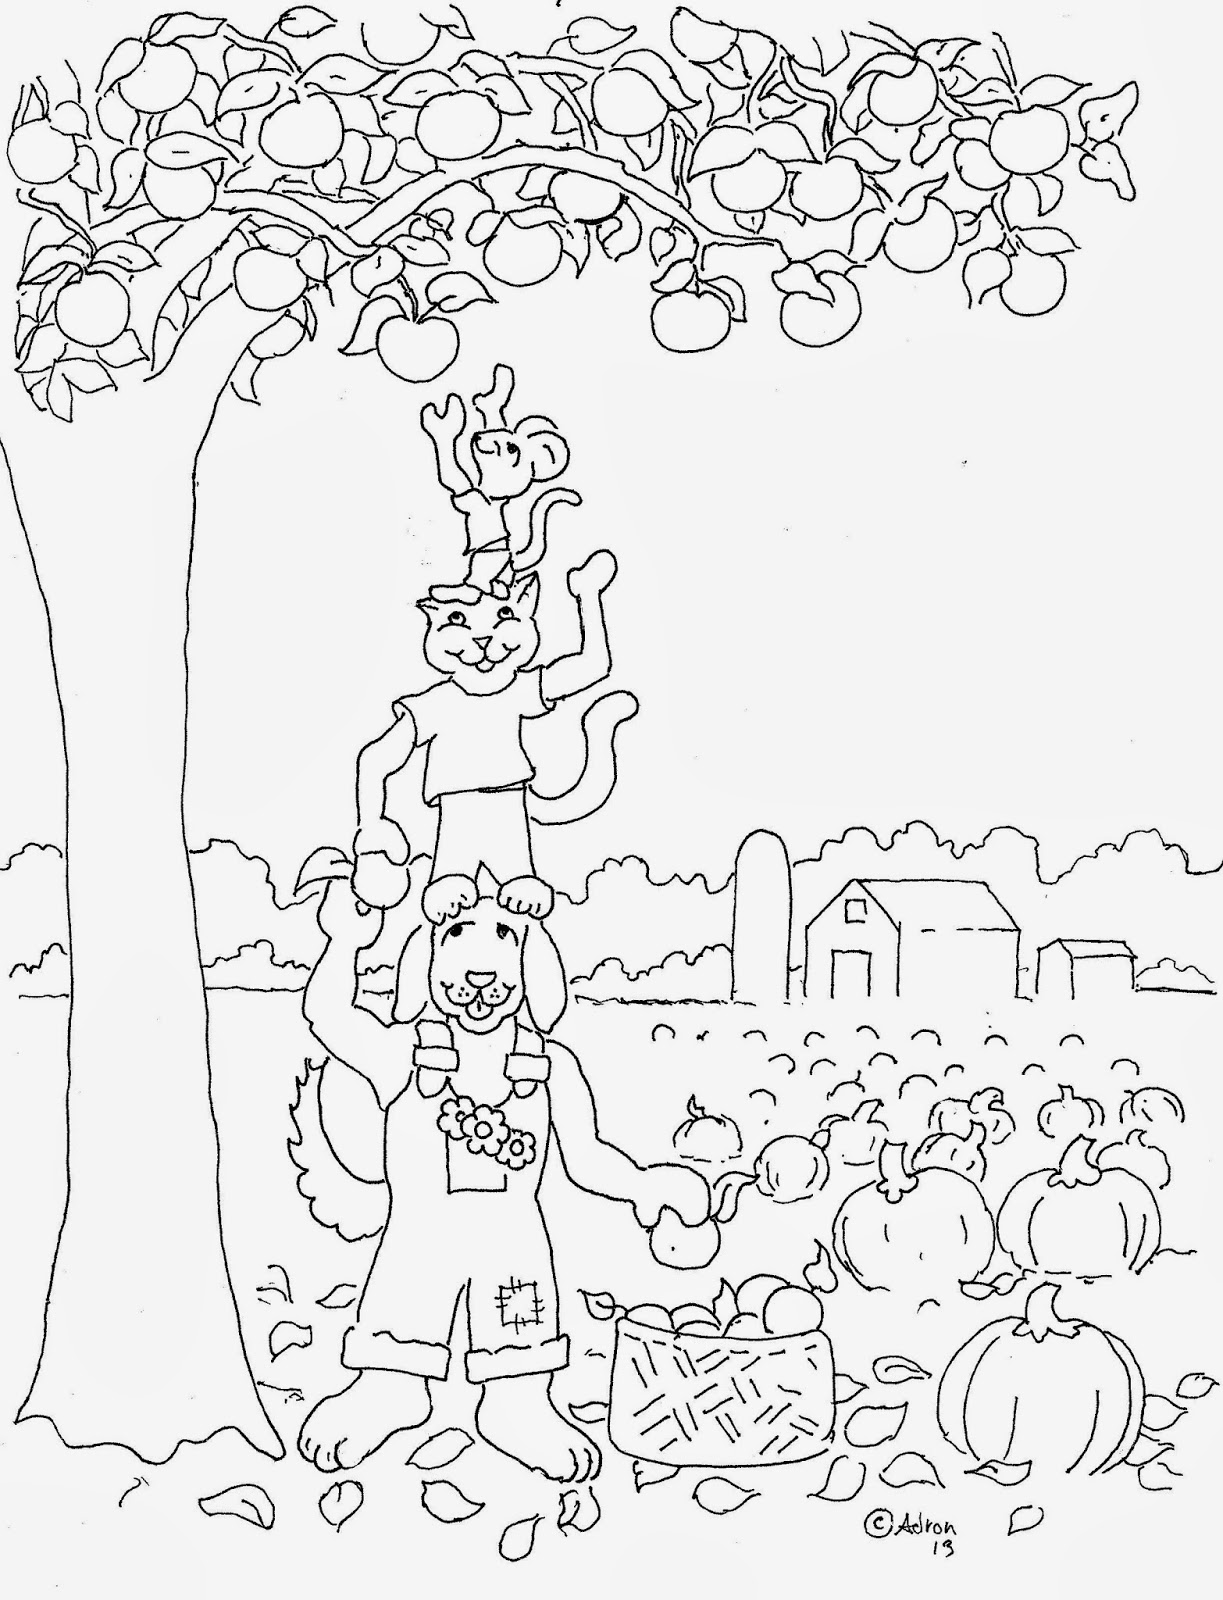 Coloring Pages For Kids By Mr Adron Autumn Harvest Free